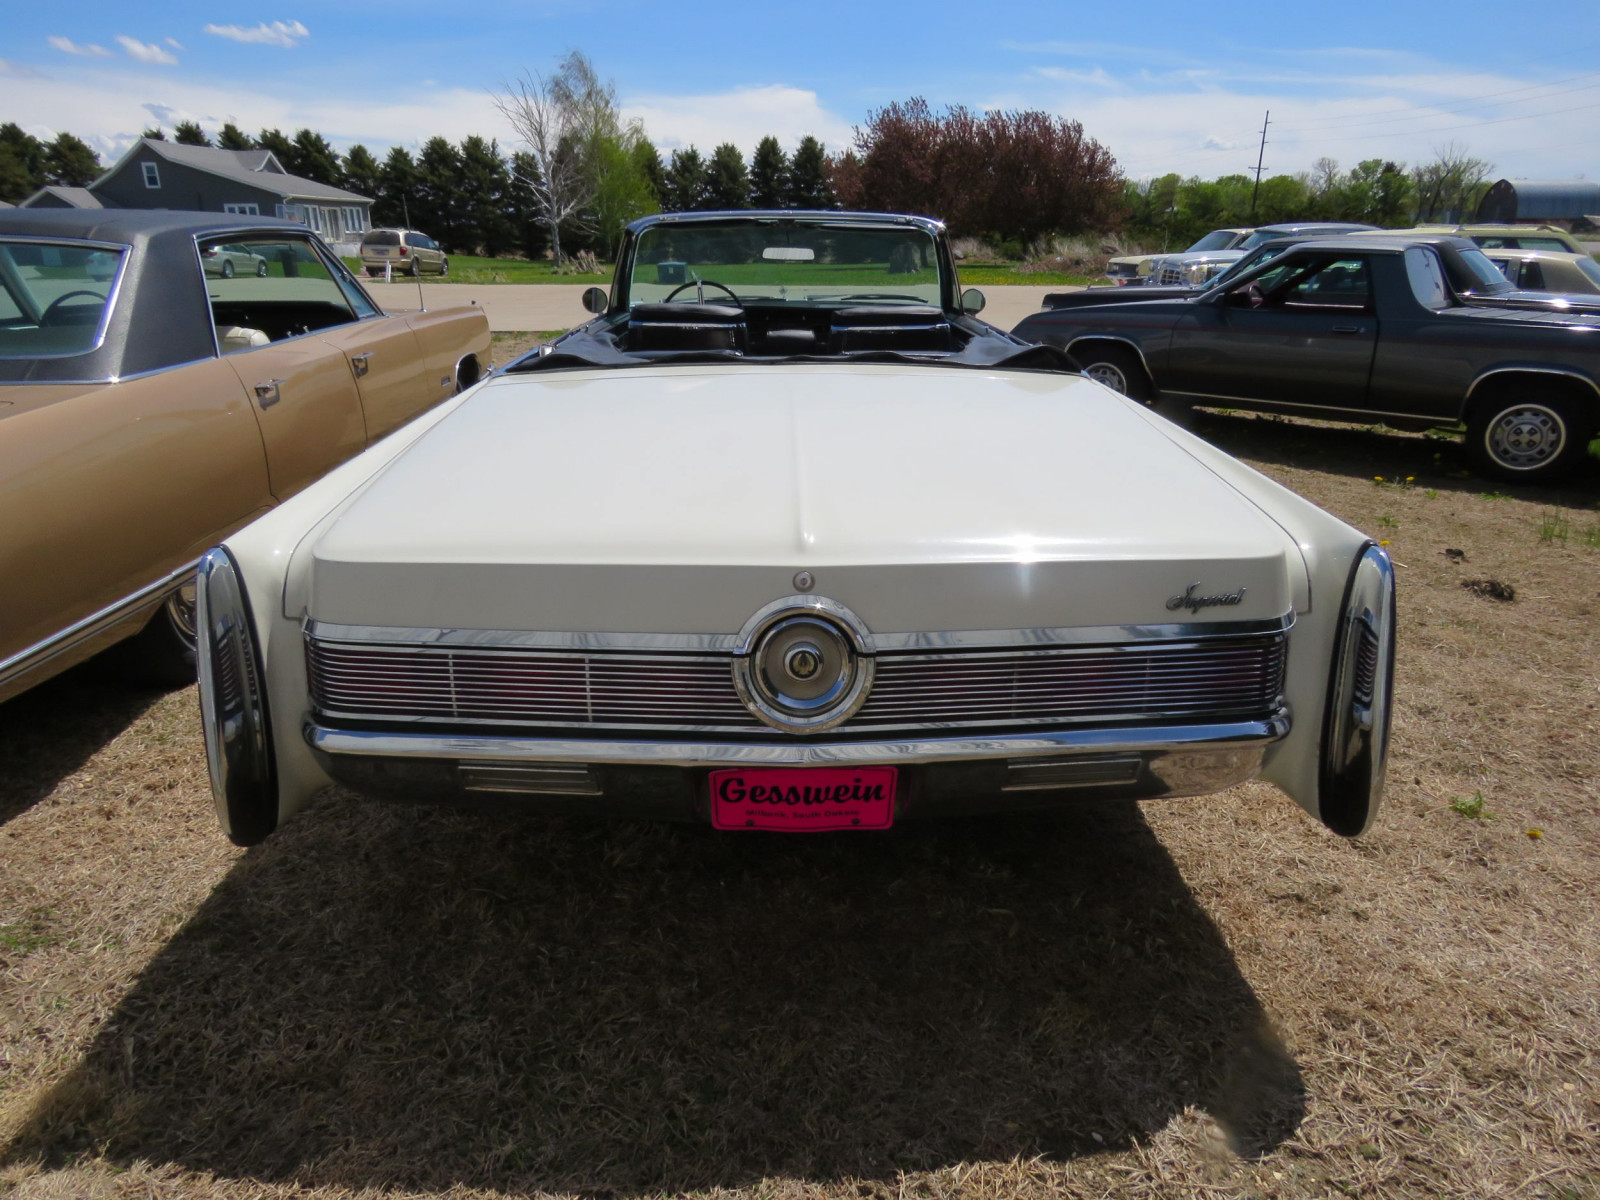 1967 Chrysler Imperial Convertible - Image 7